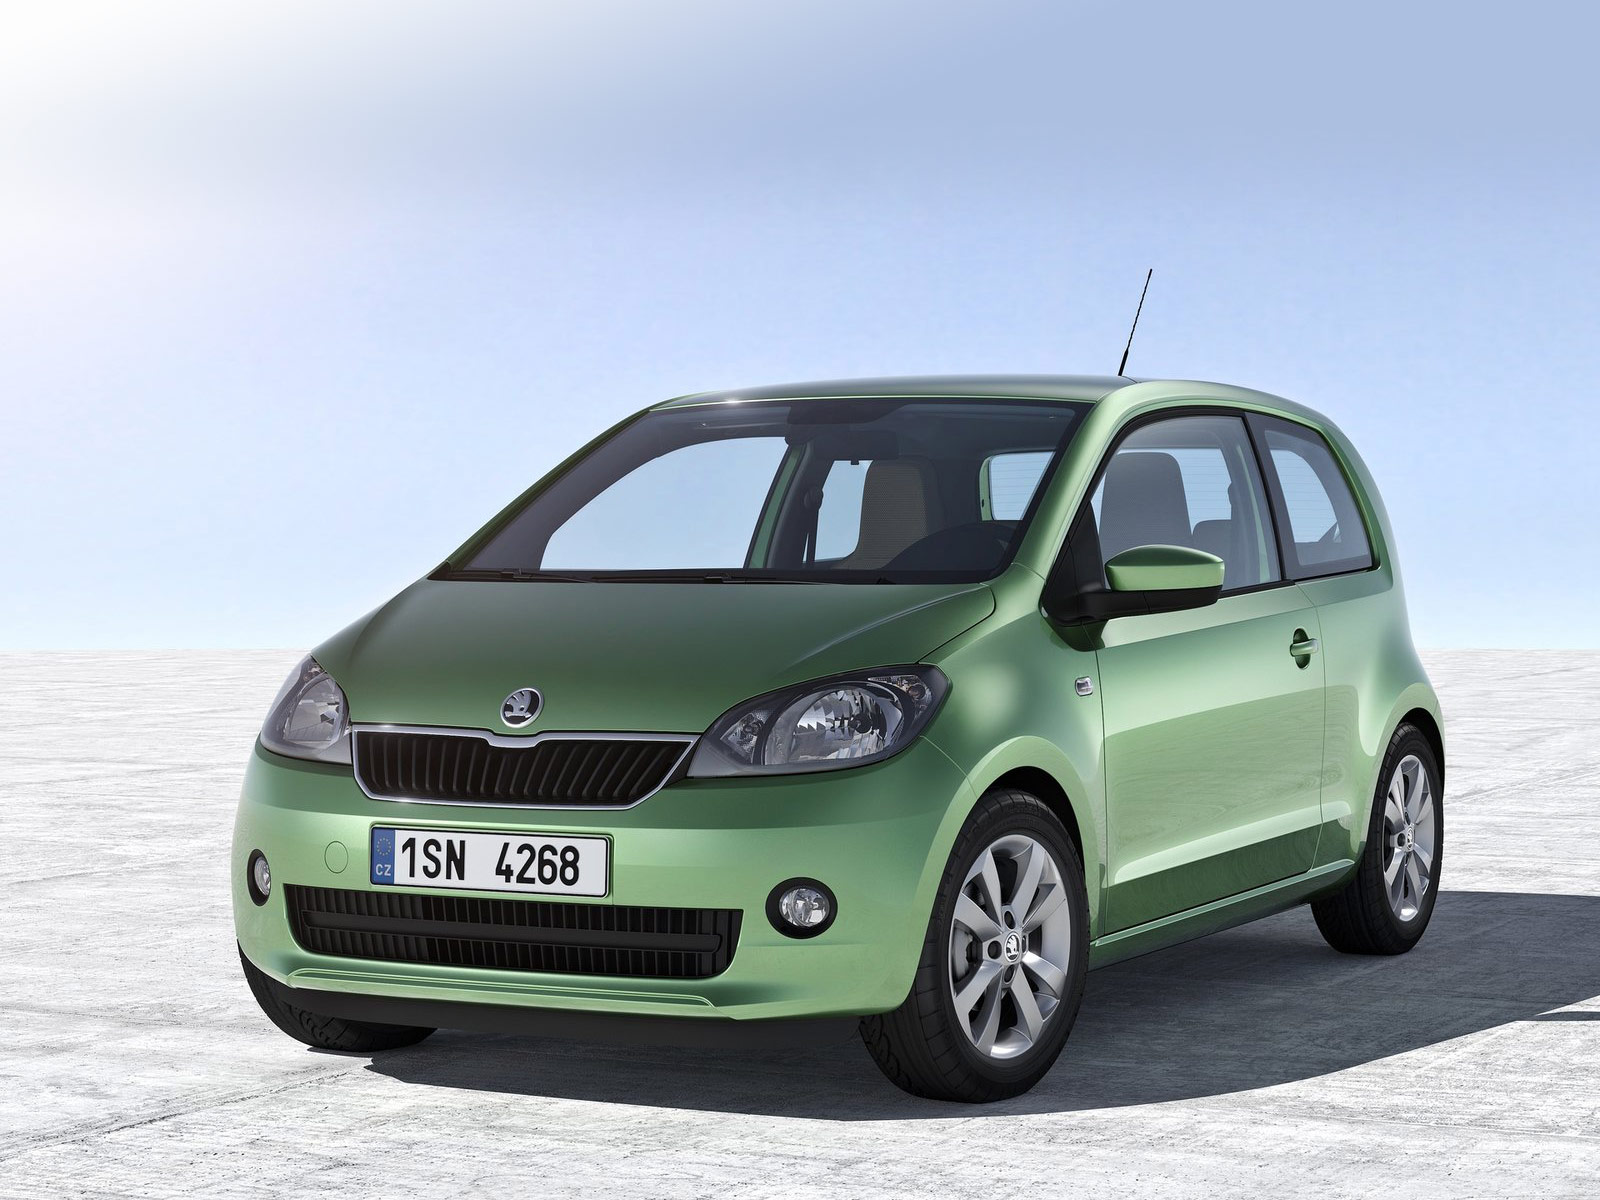 2013 skoda citigo car accident lawyers information. Black Bedroom Furniture Sets. Home Design Ideas